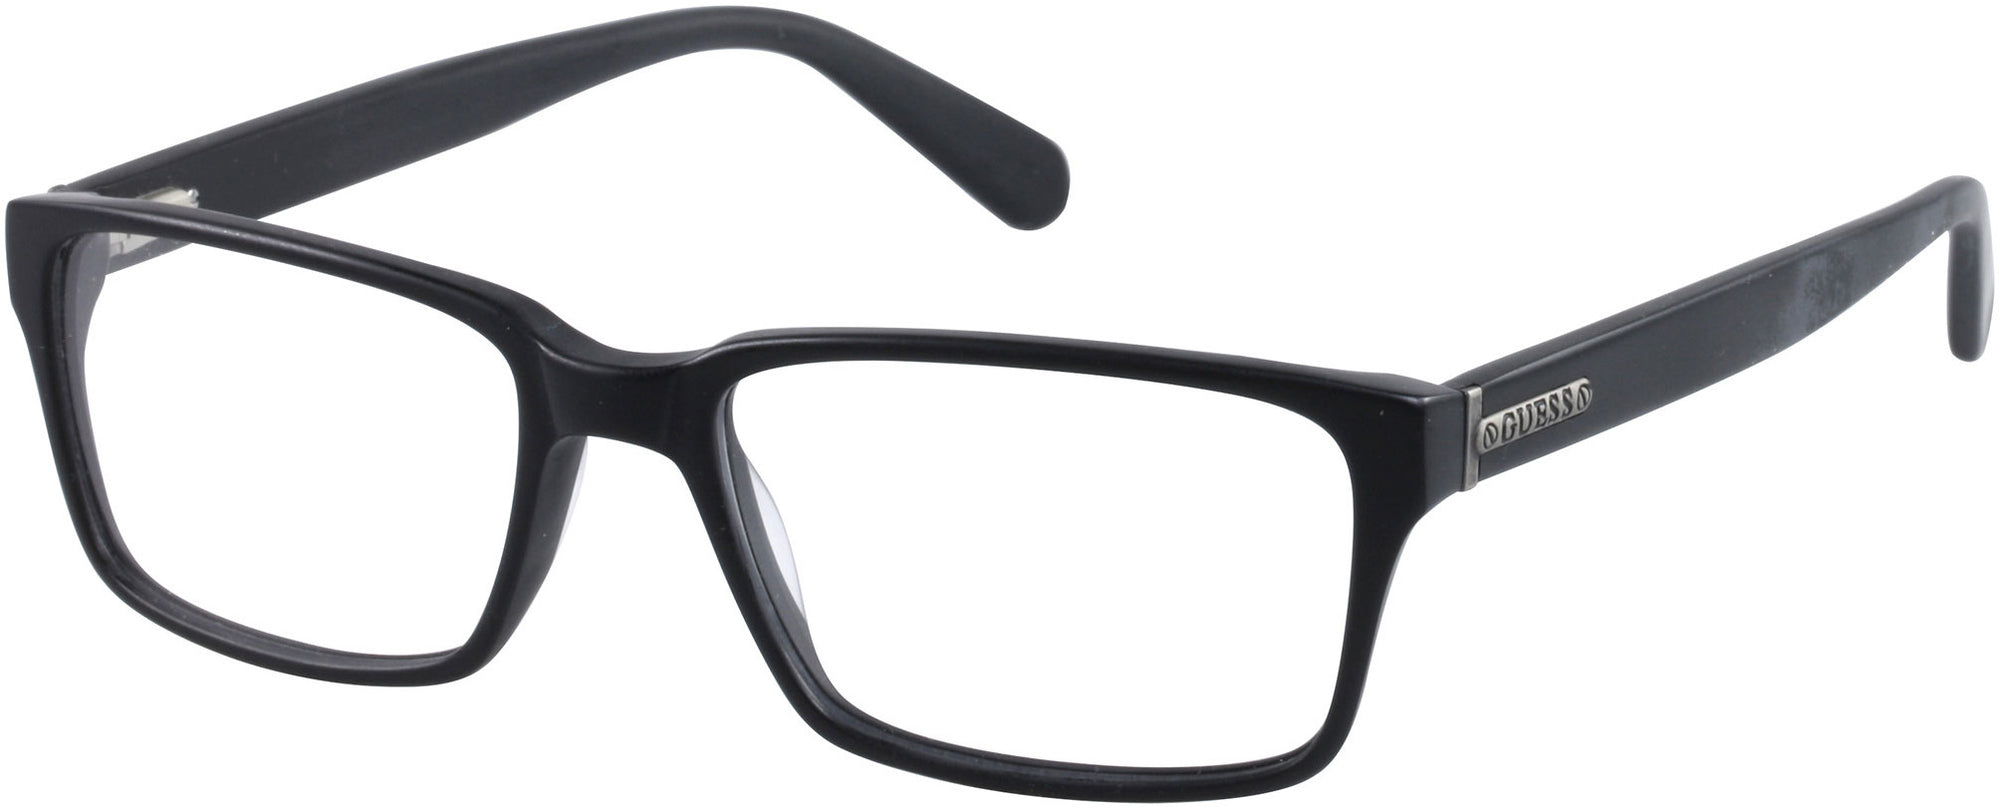 Guess GU1843 Eyeglasses B84-B84 - Black